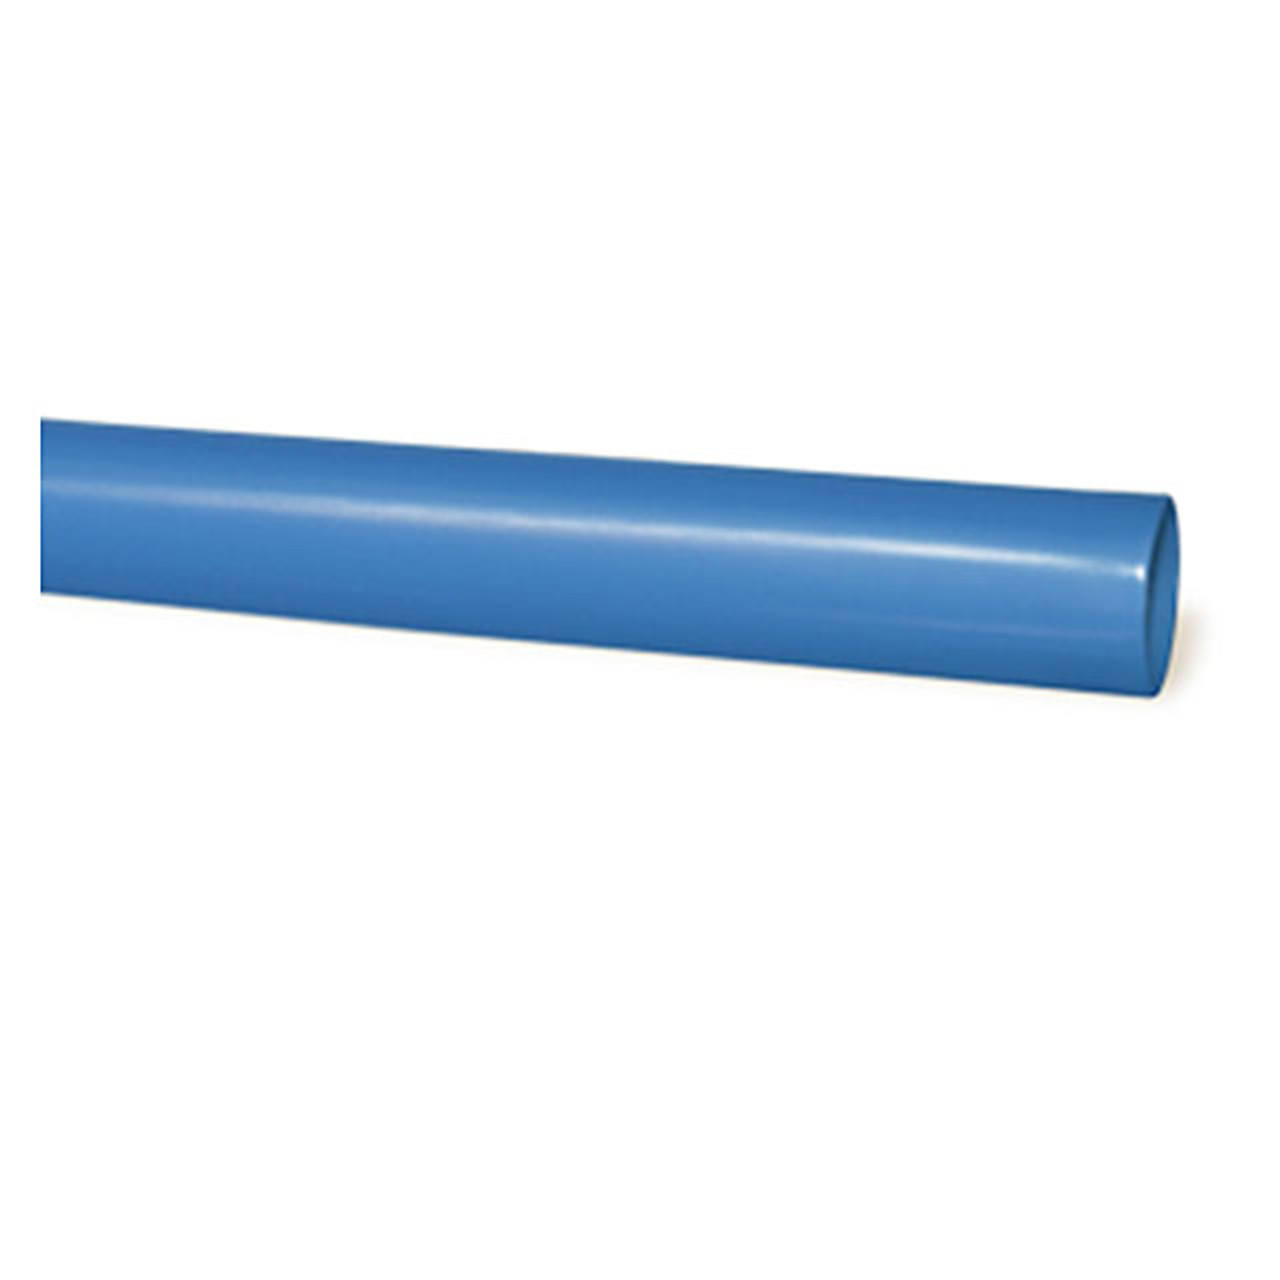 "HEAT SHRINK 1.0"" BLUE 4' ADHESIVE LINED DUAL WALL"